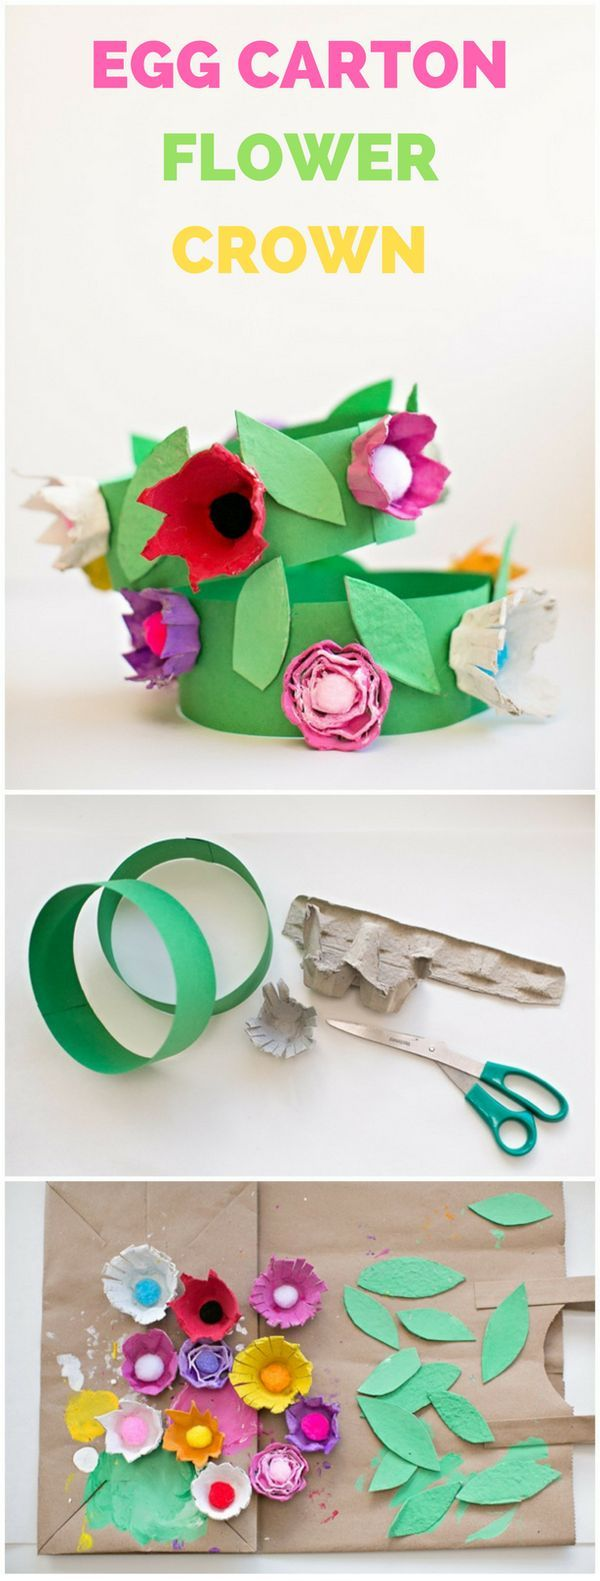 Recycled DIY Egg Carton Flower Crown Cute Way To Celebrate Spring With The Kids